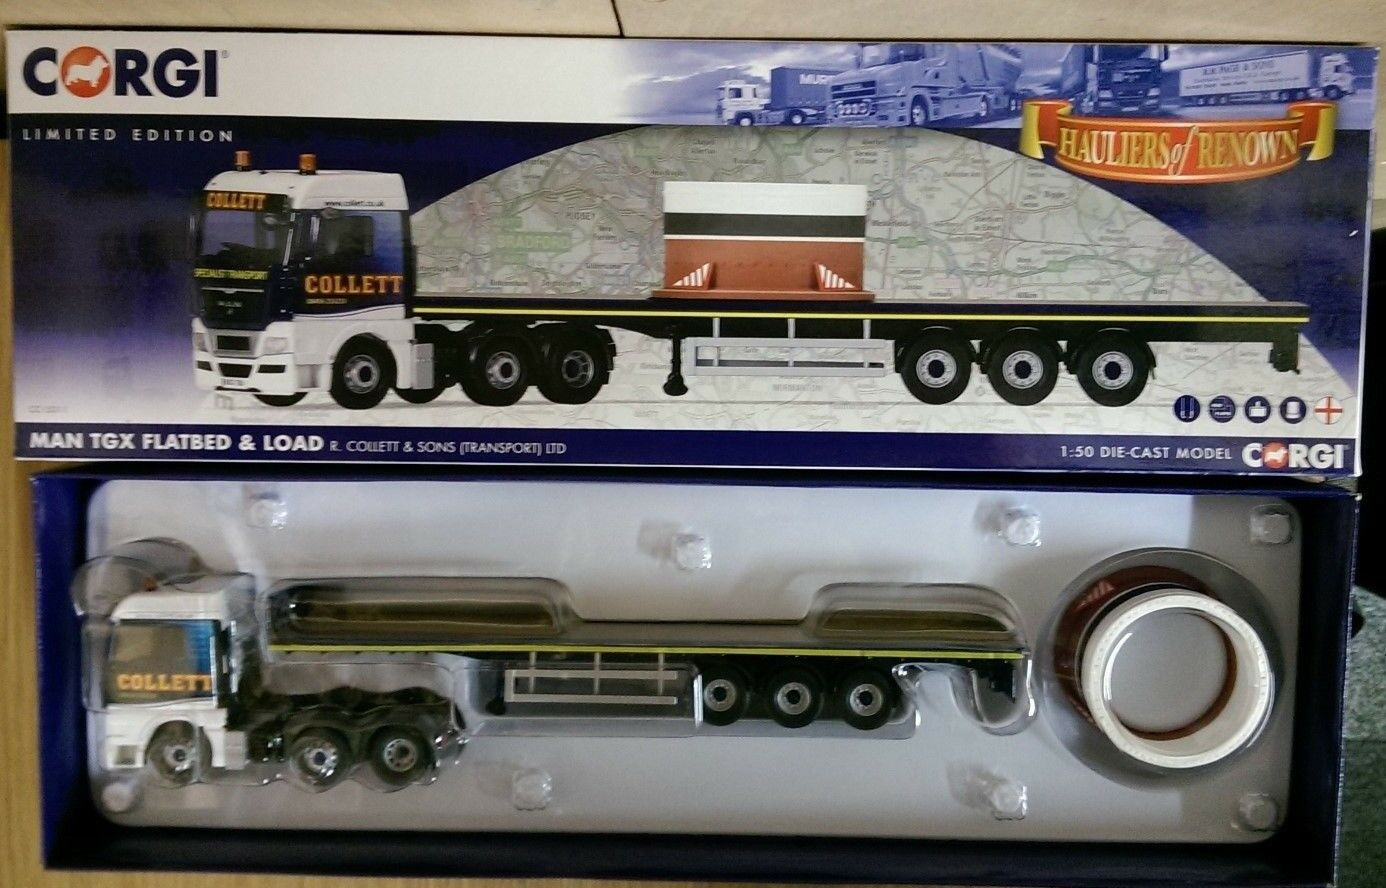 CORGI cc15211 MAN TGX Flatbed & Load R. Collett & Sons Ltd Edition No 800 of 800